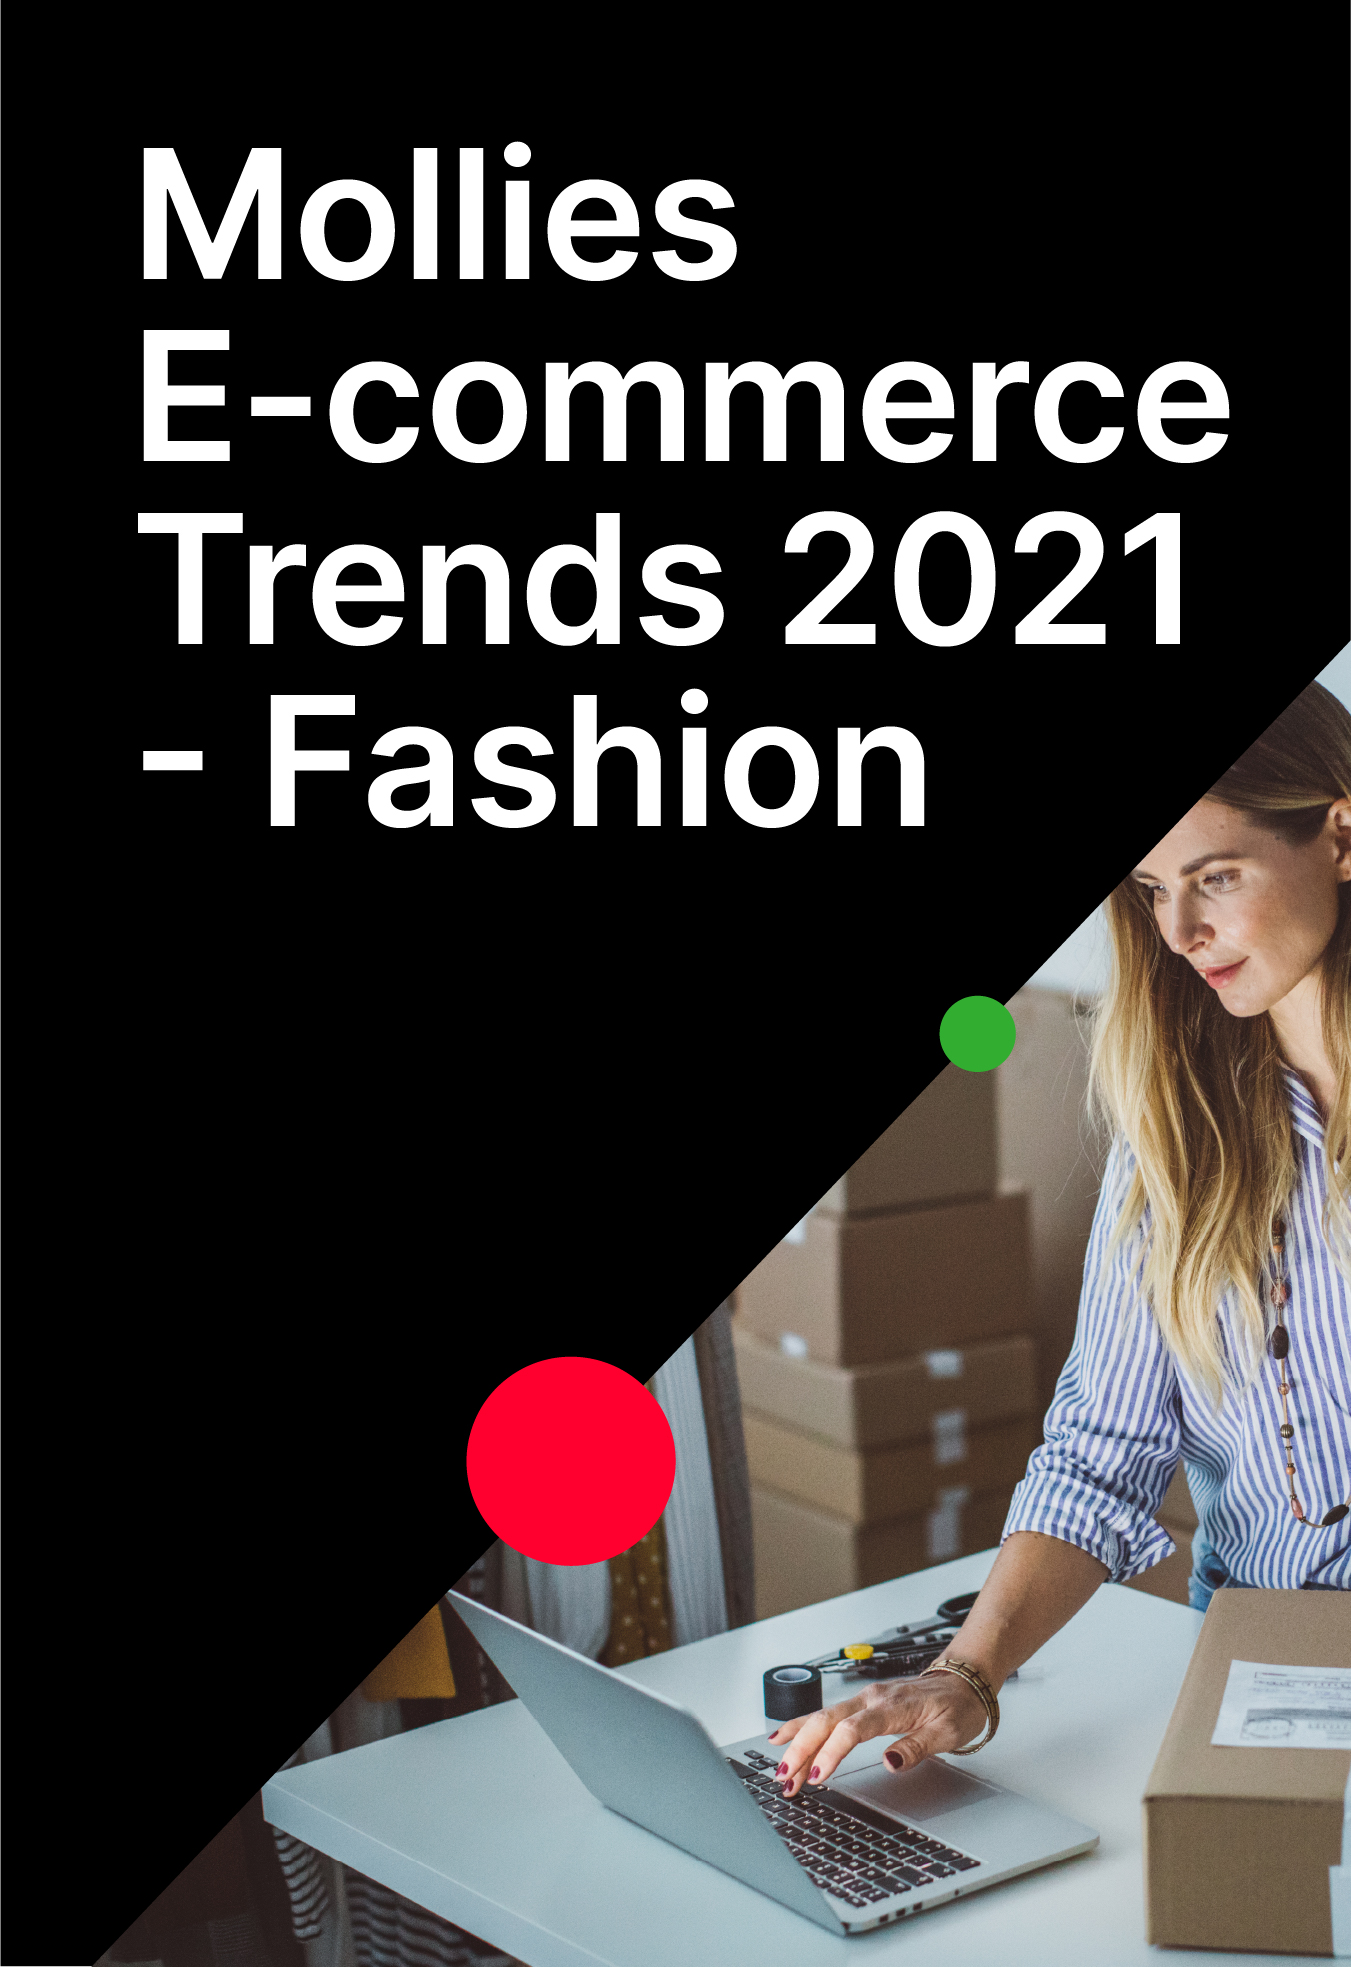 Mollies e-commerce Trends 2021 - Mode